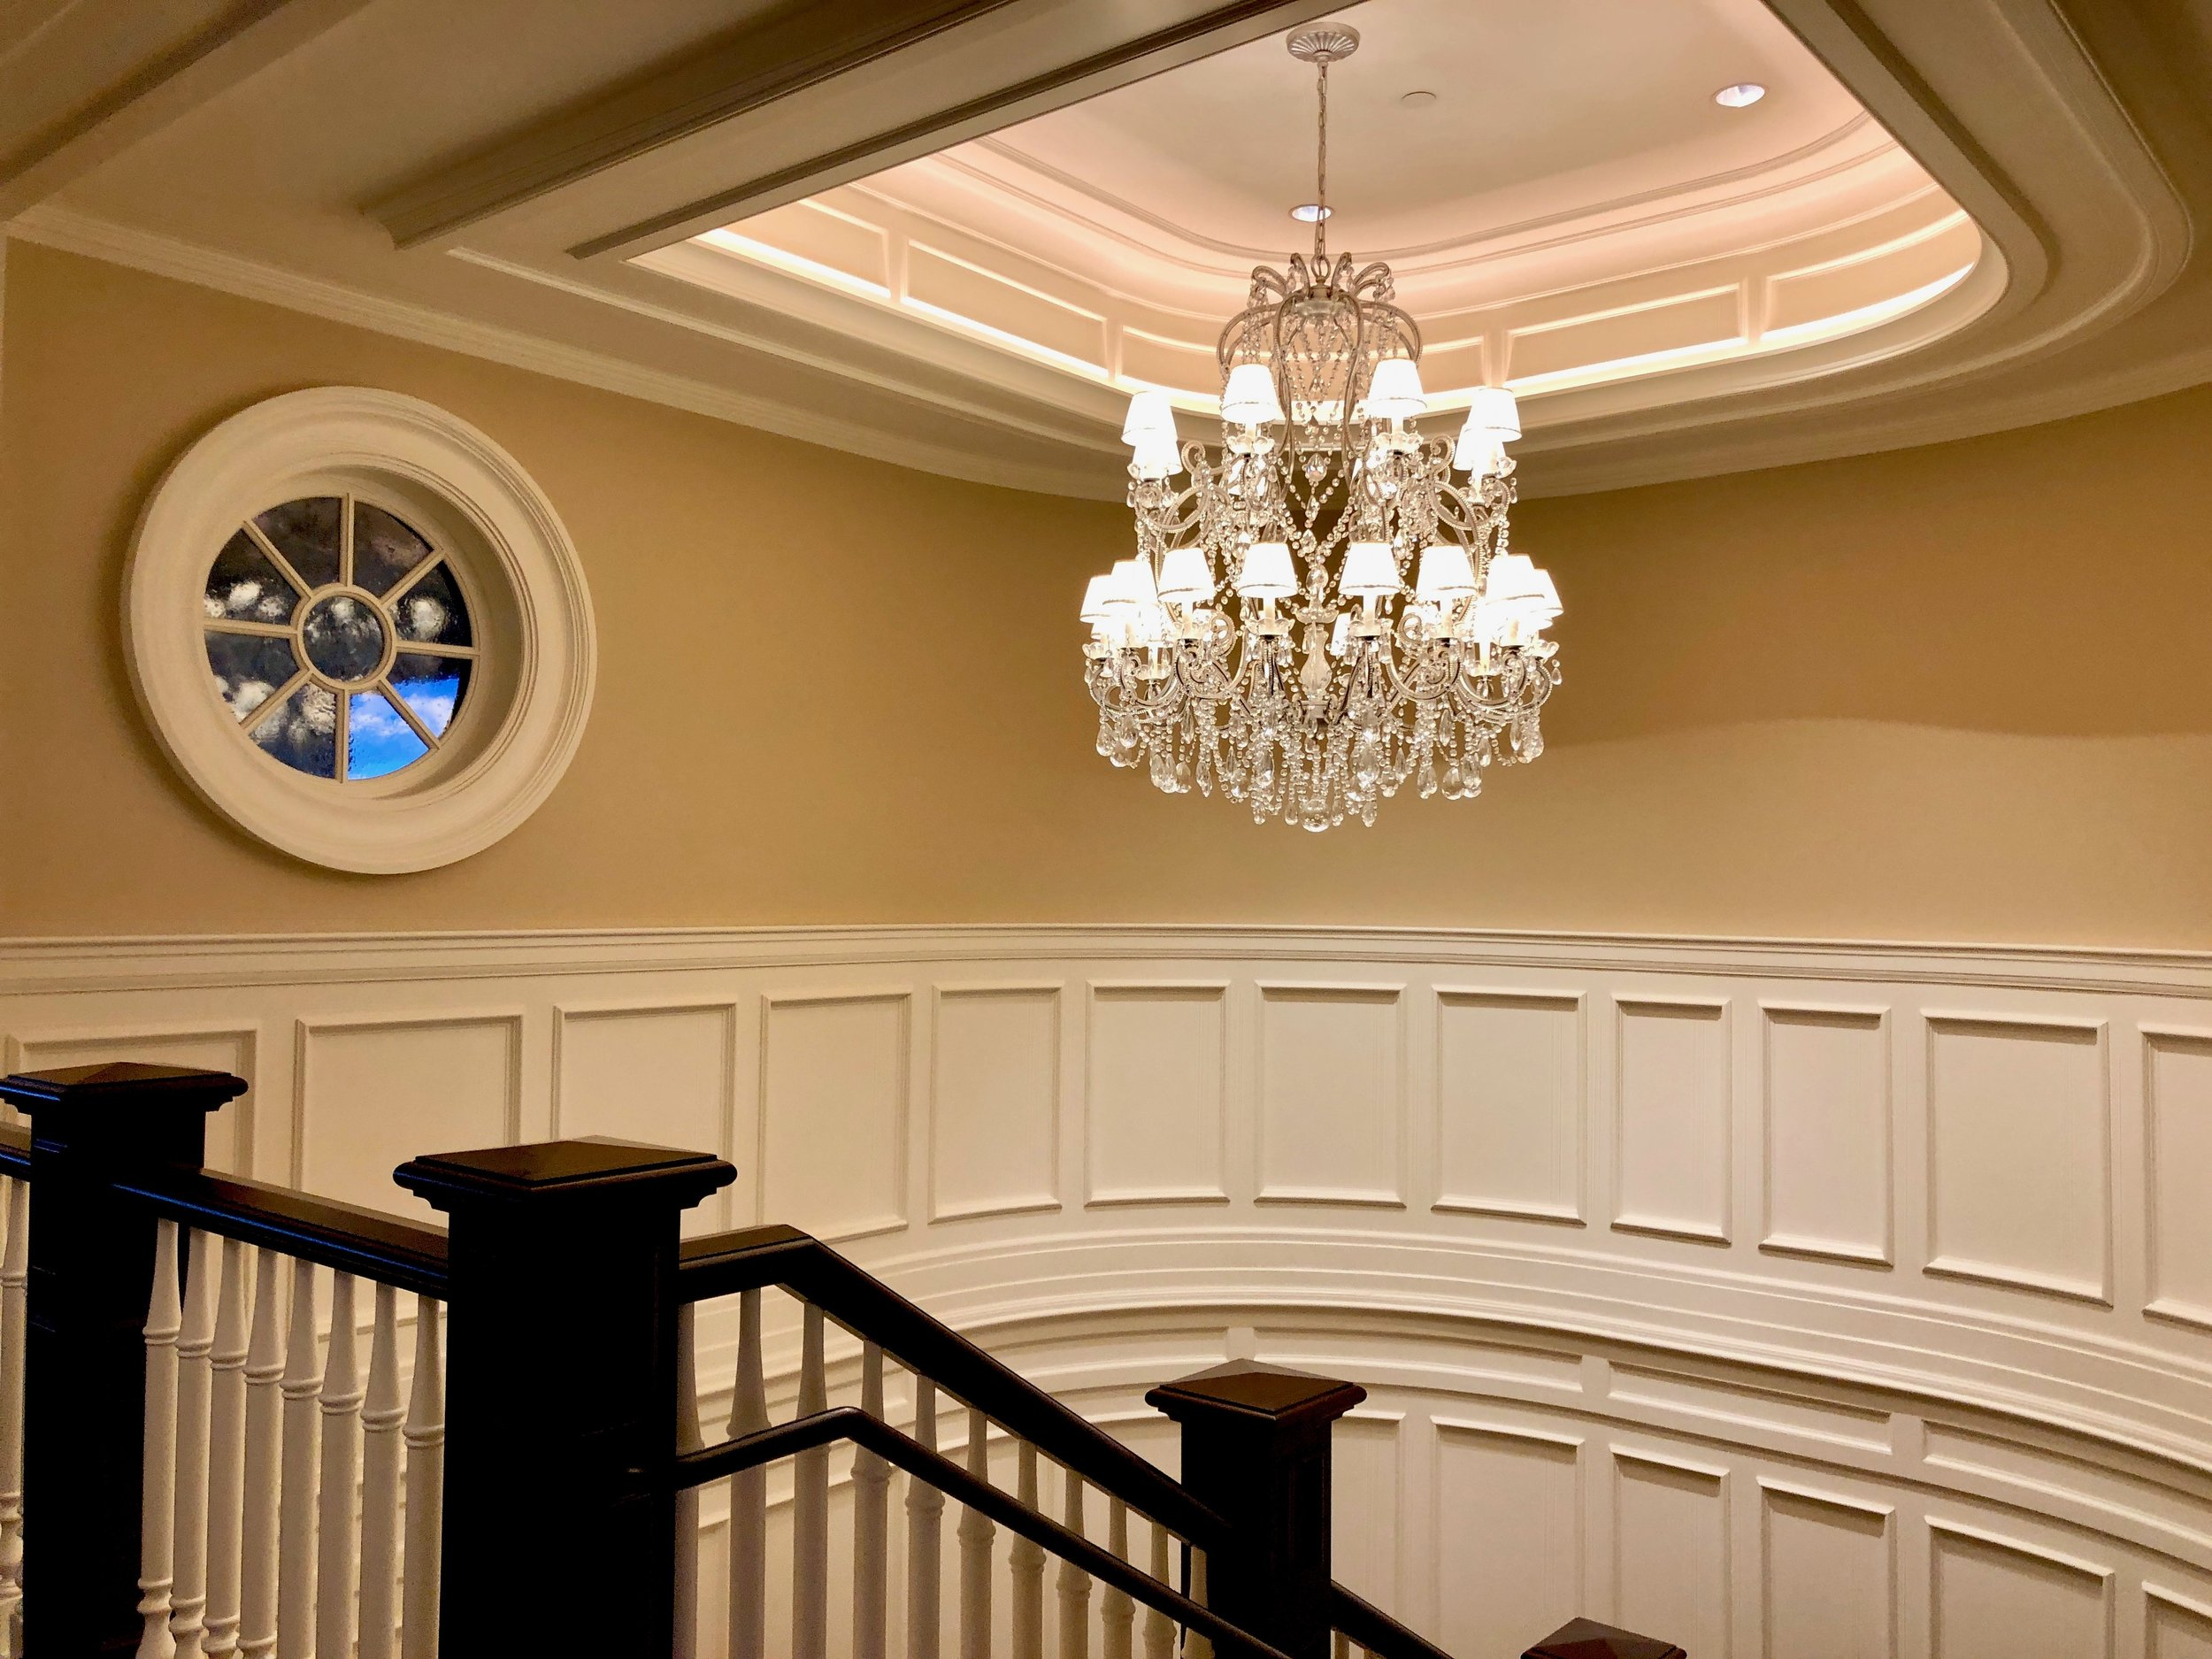 Boothbay Harbor Country Club stairway and chandelier.jpg